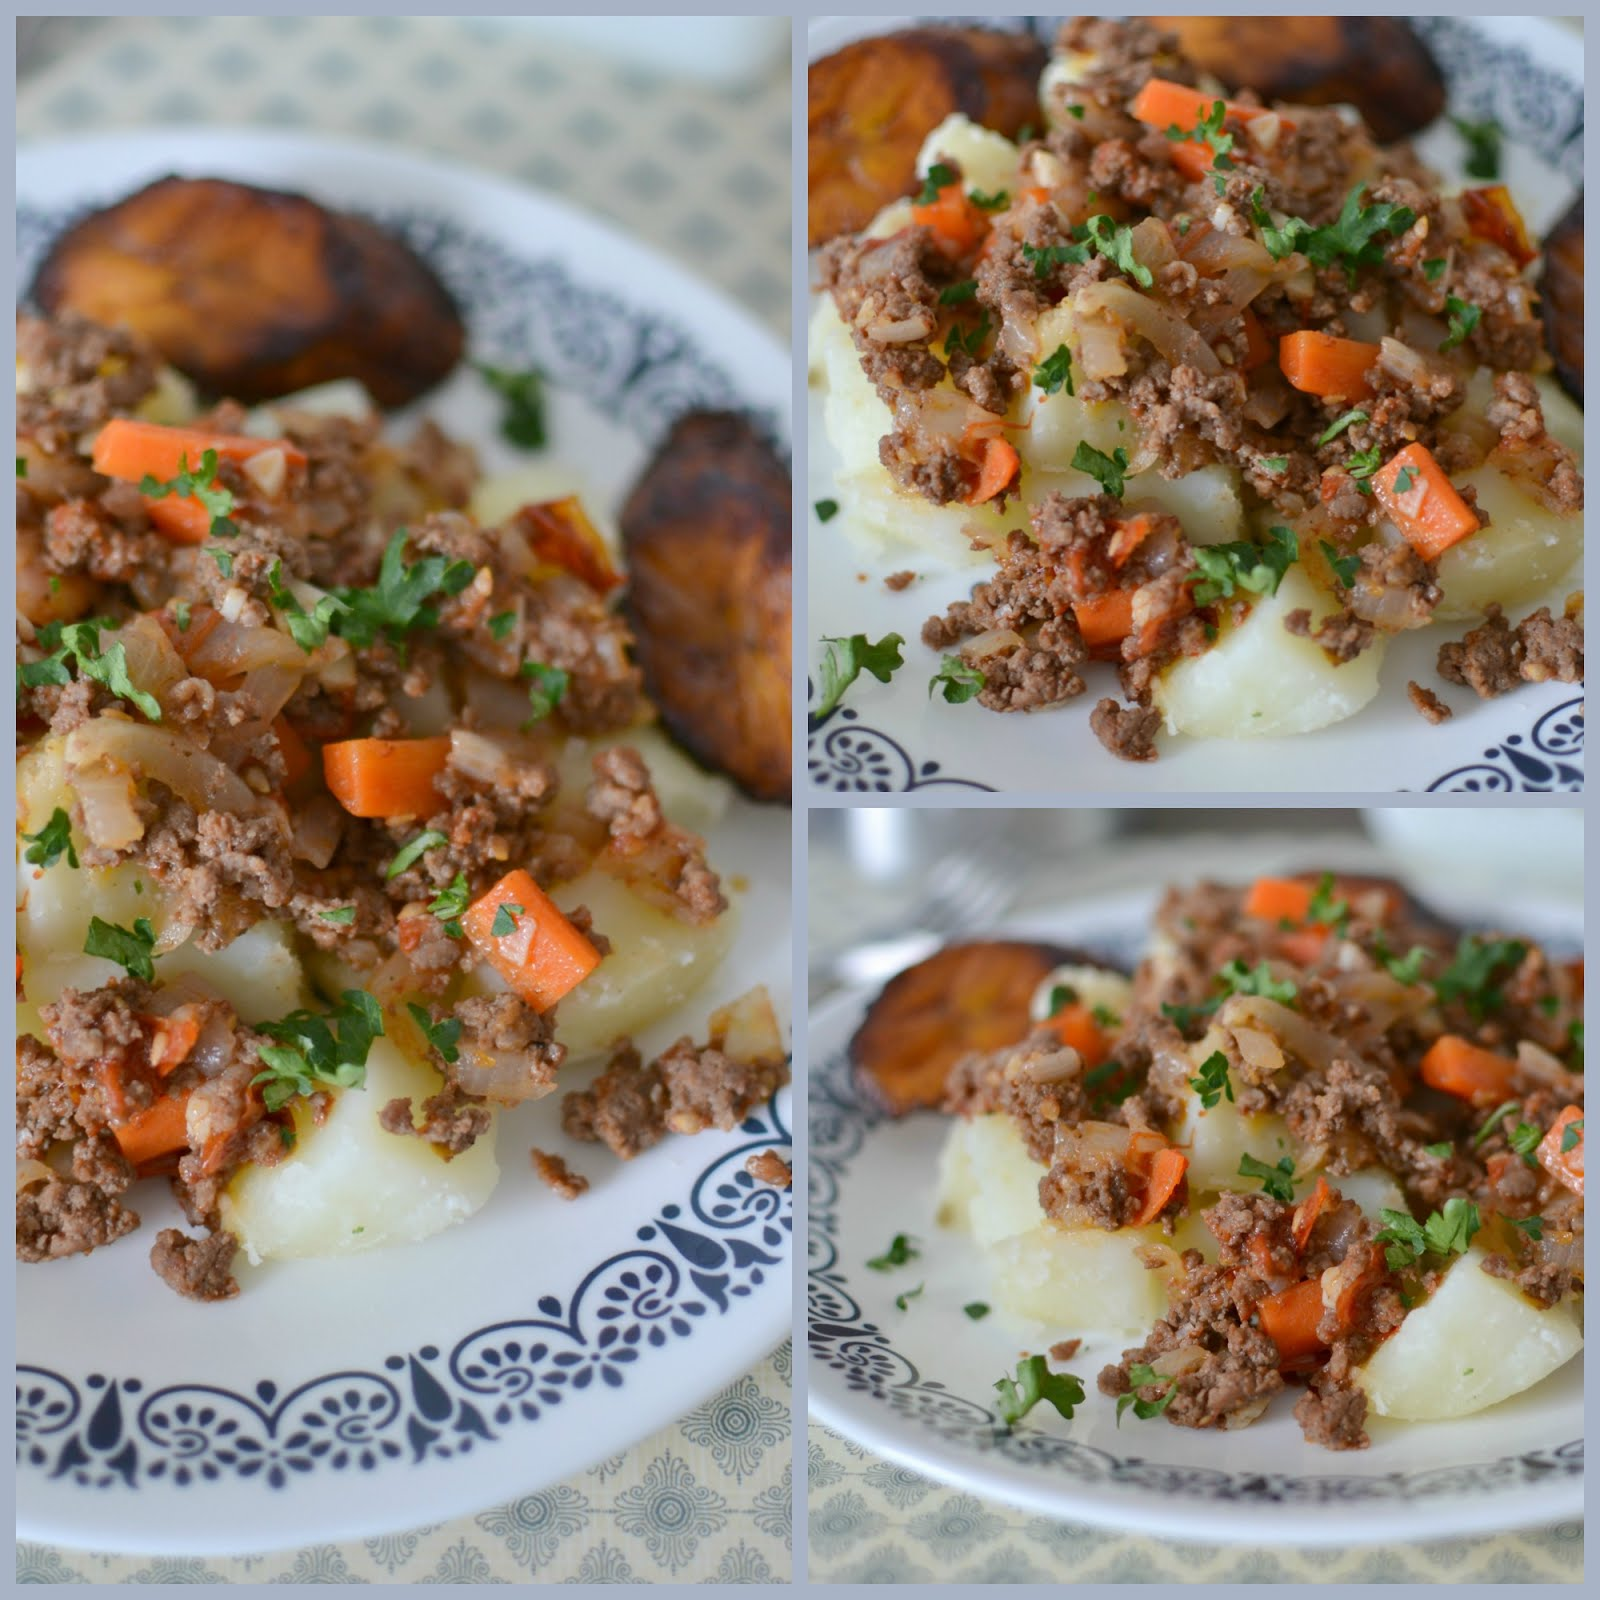 New recipe: Ground Beef and Vegetables with Garlic Potatoes! (click photo to view)